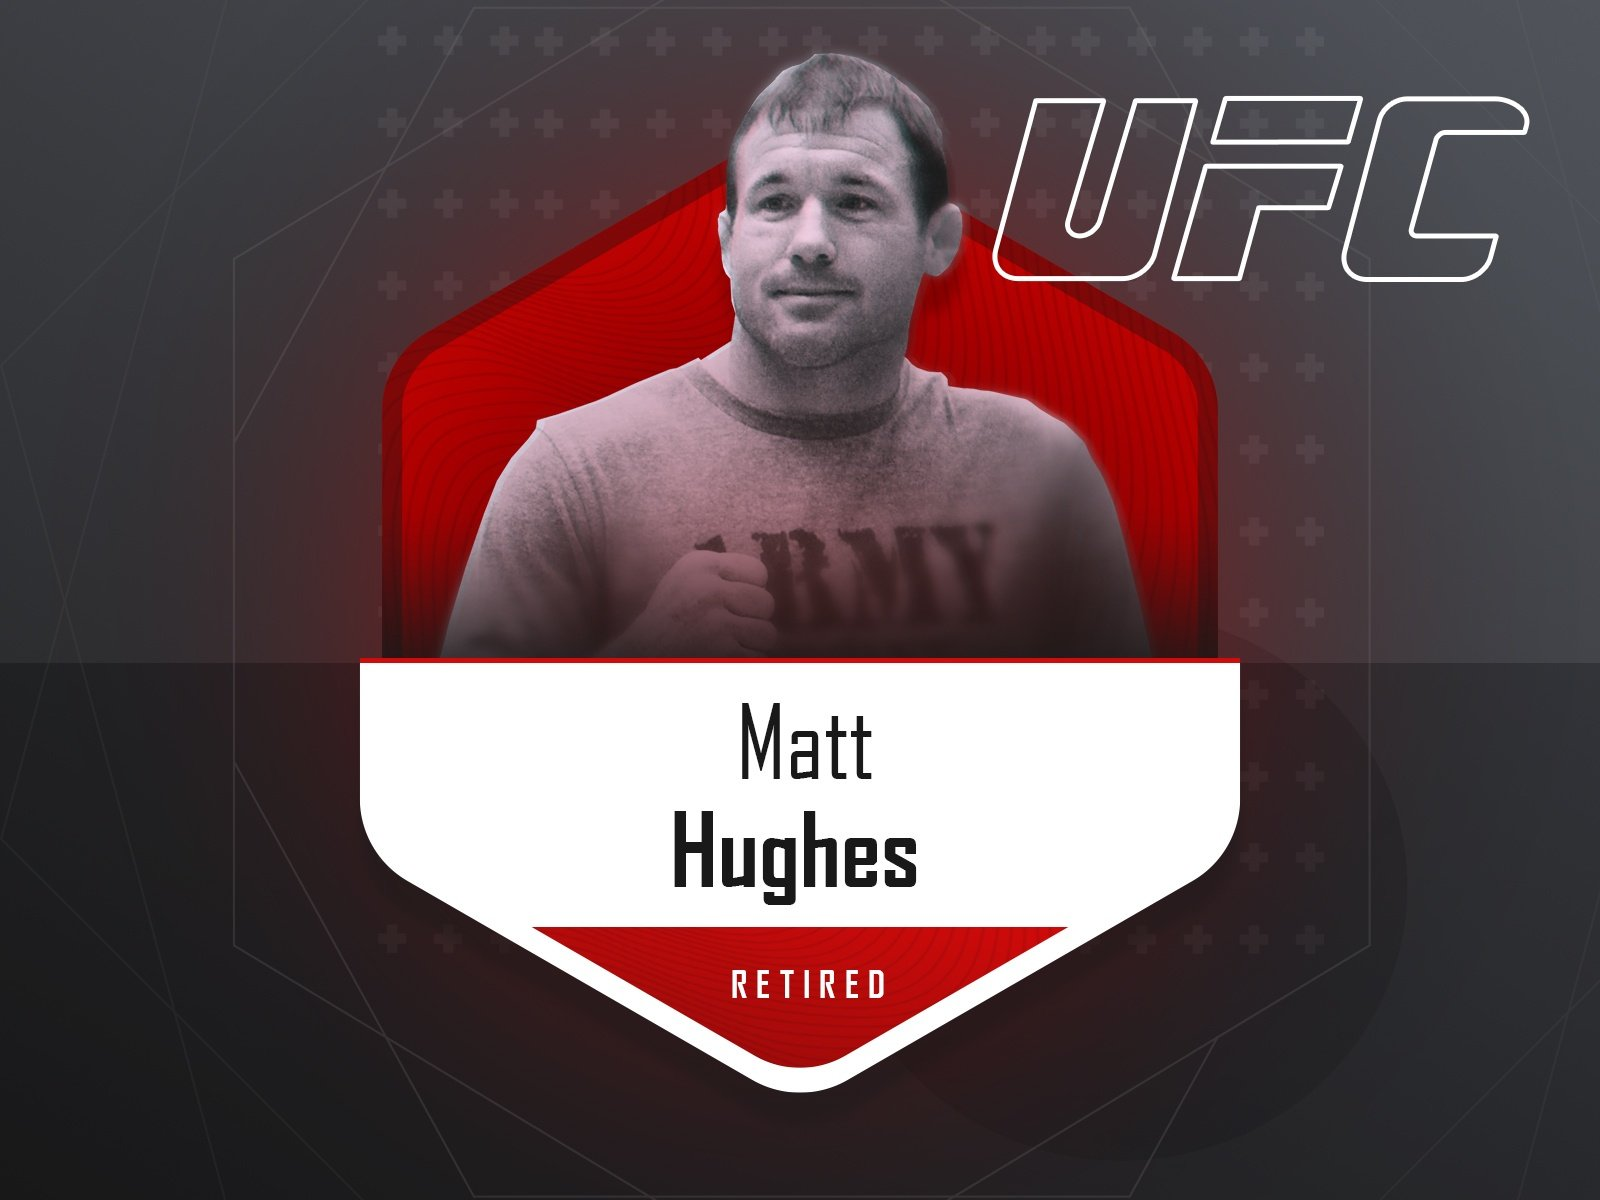 Matt Hughes - UFC fighter